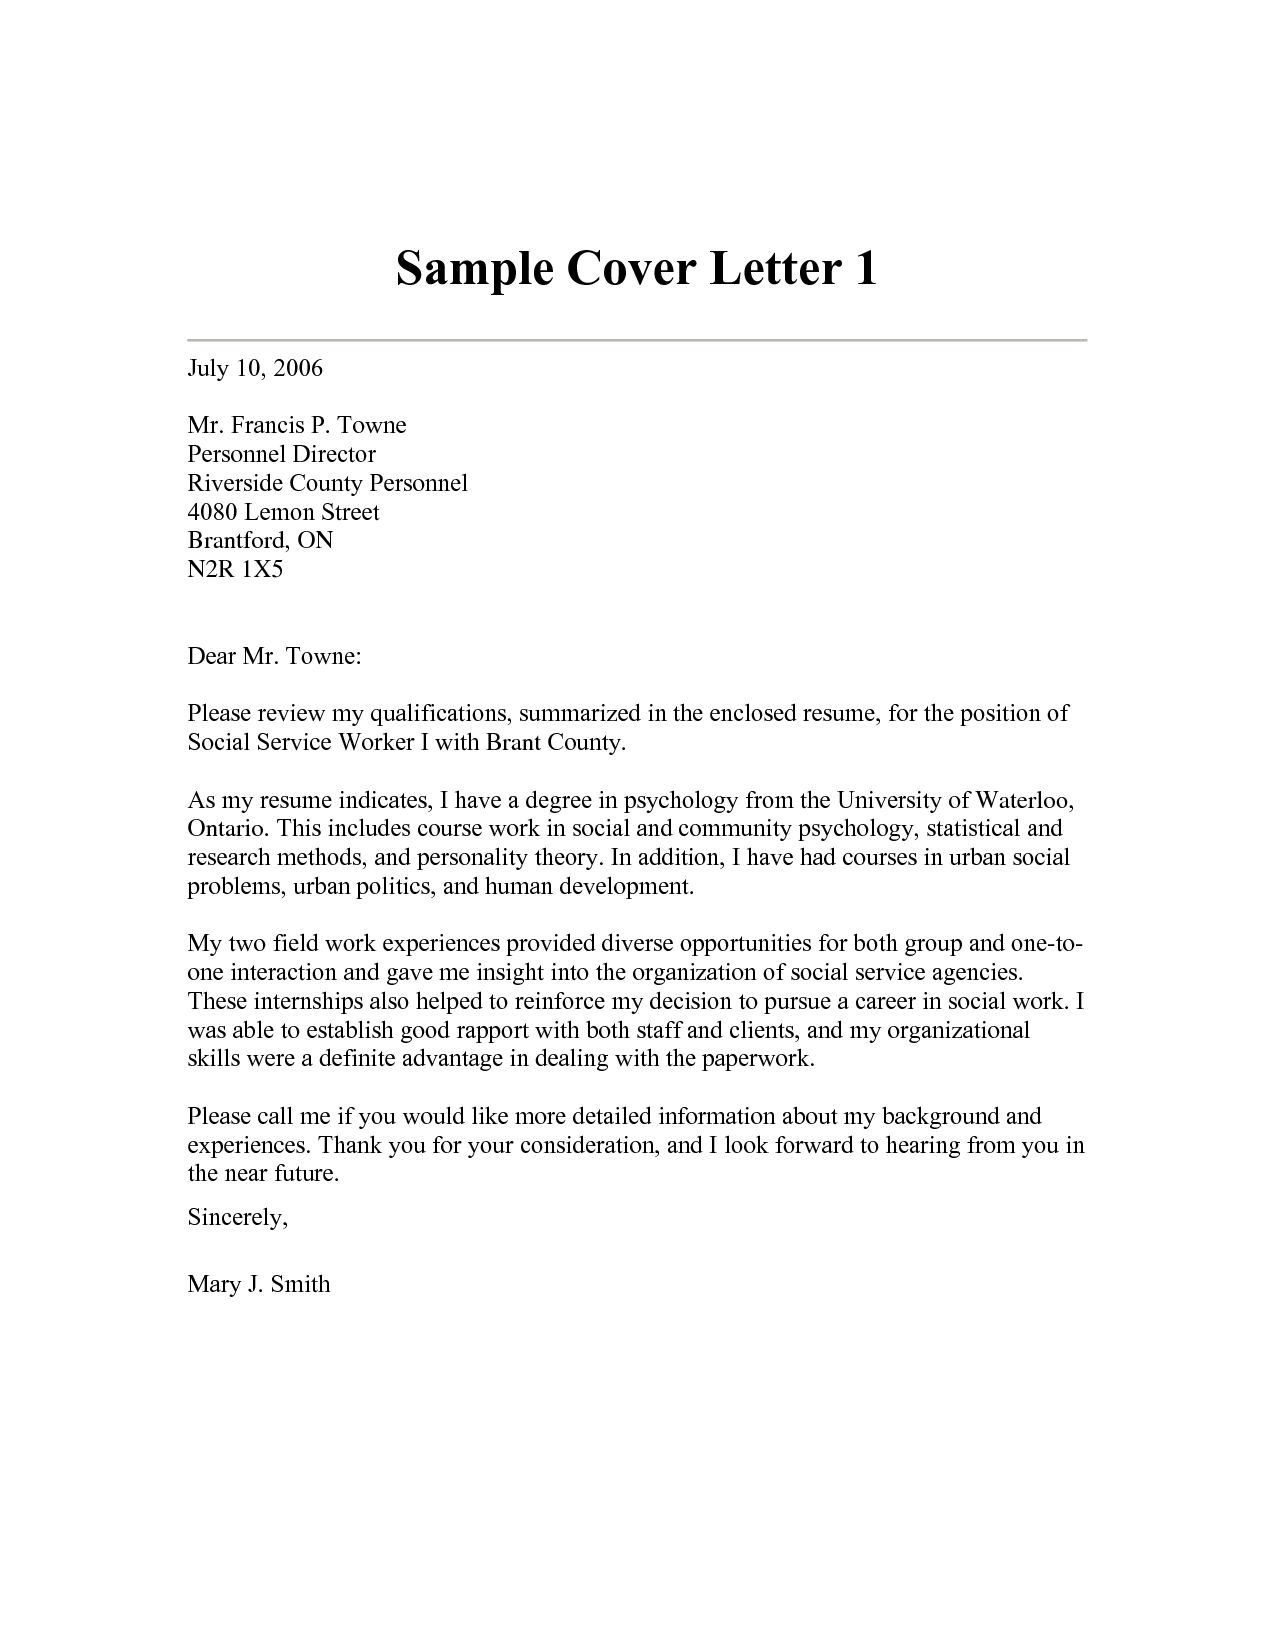 Cover Letter Template Social Work Coverlettertemplate